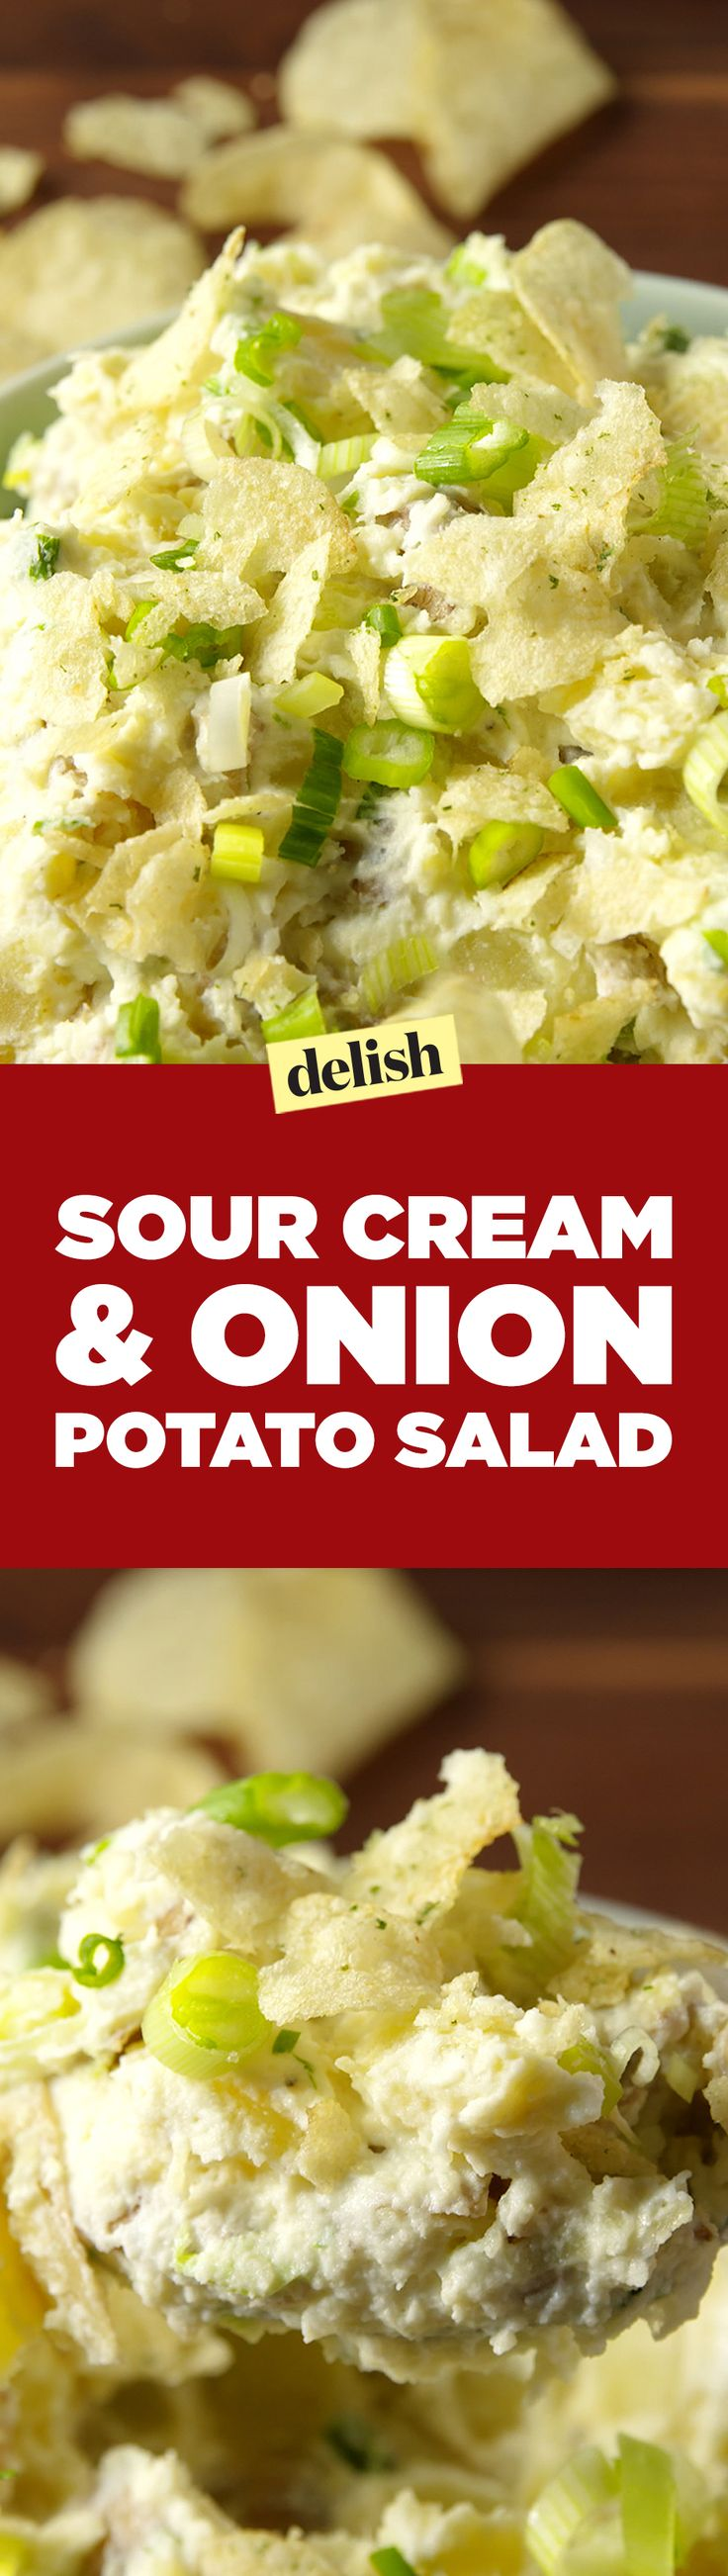 Sour Cream and Onion Potato Salad tastes just like your favorite chip. Get the recipe on Delish.com.